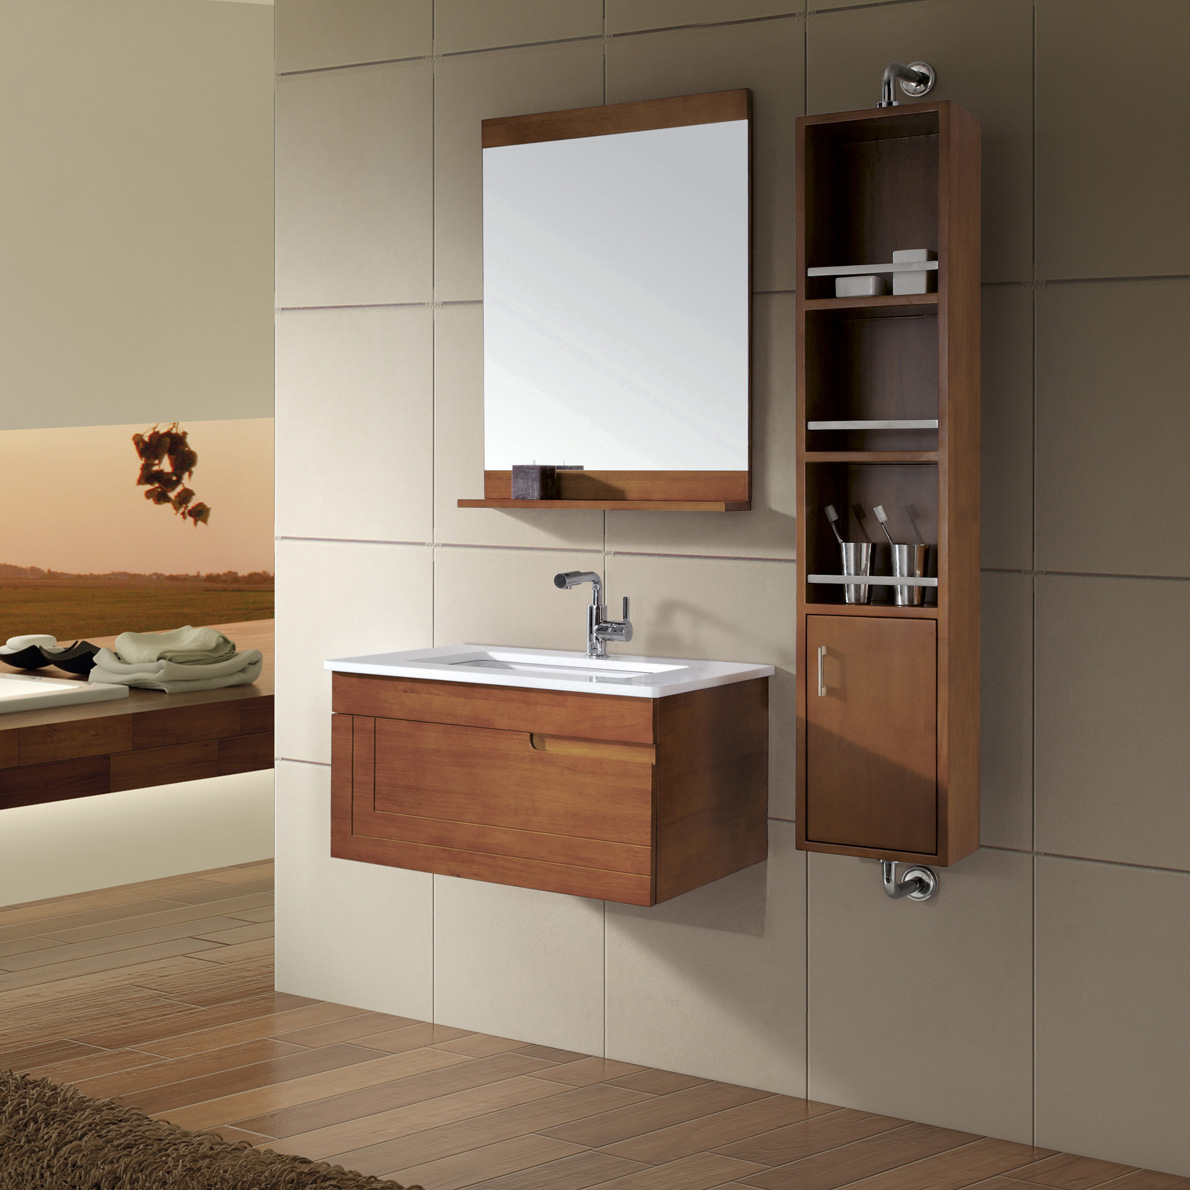 China bathroom cabinet vanity kl269 china bathroom for Small bathroom basin cabinets